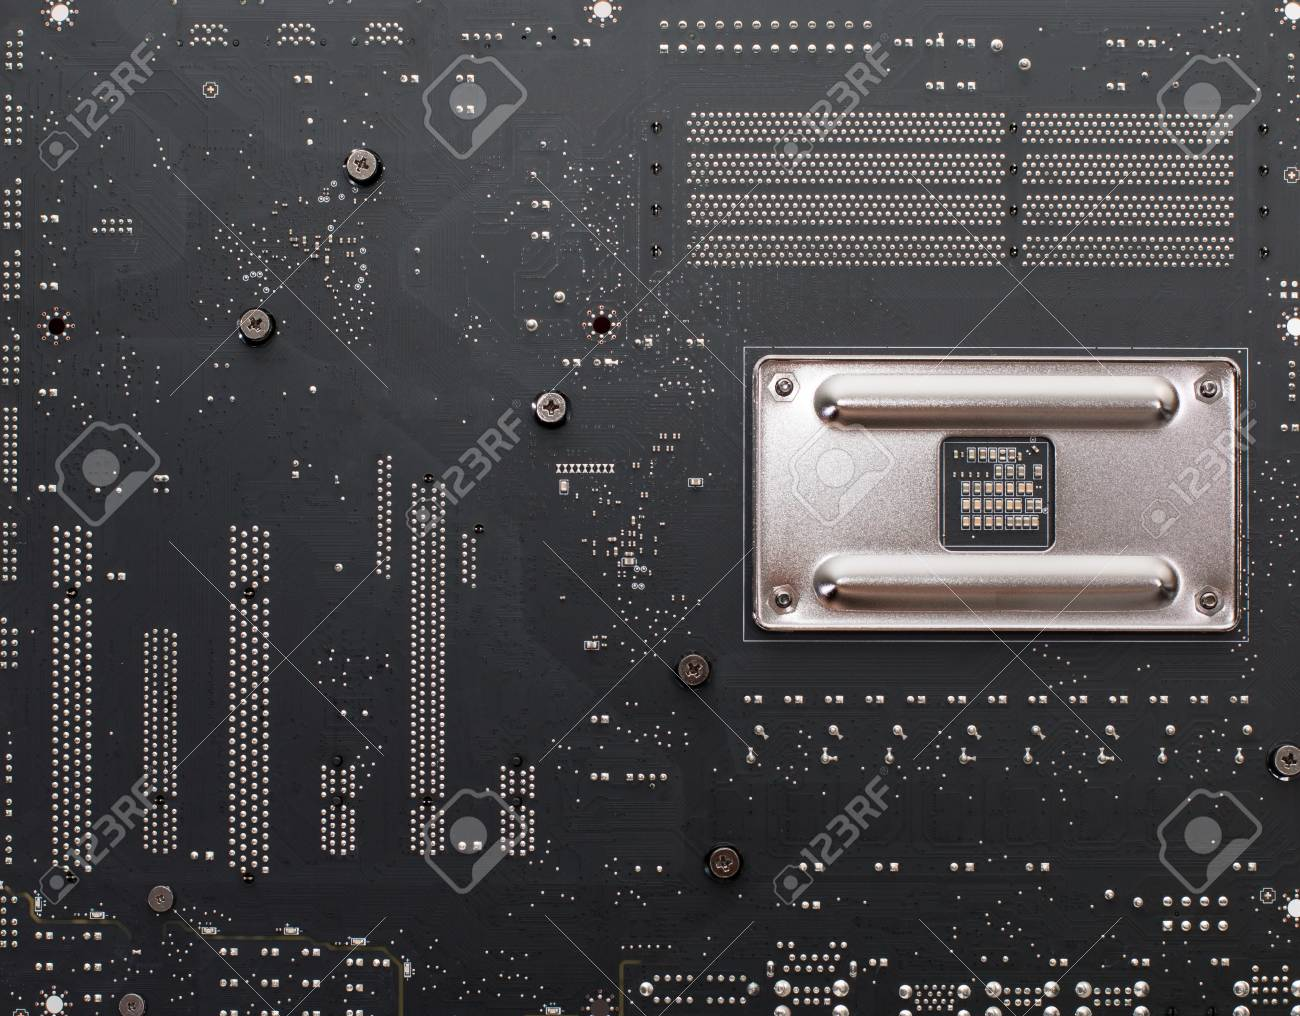 how to view your motherboard